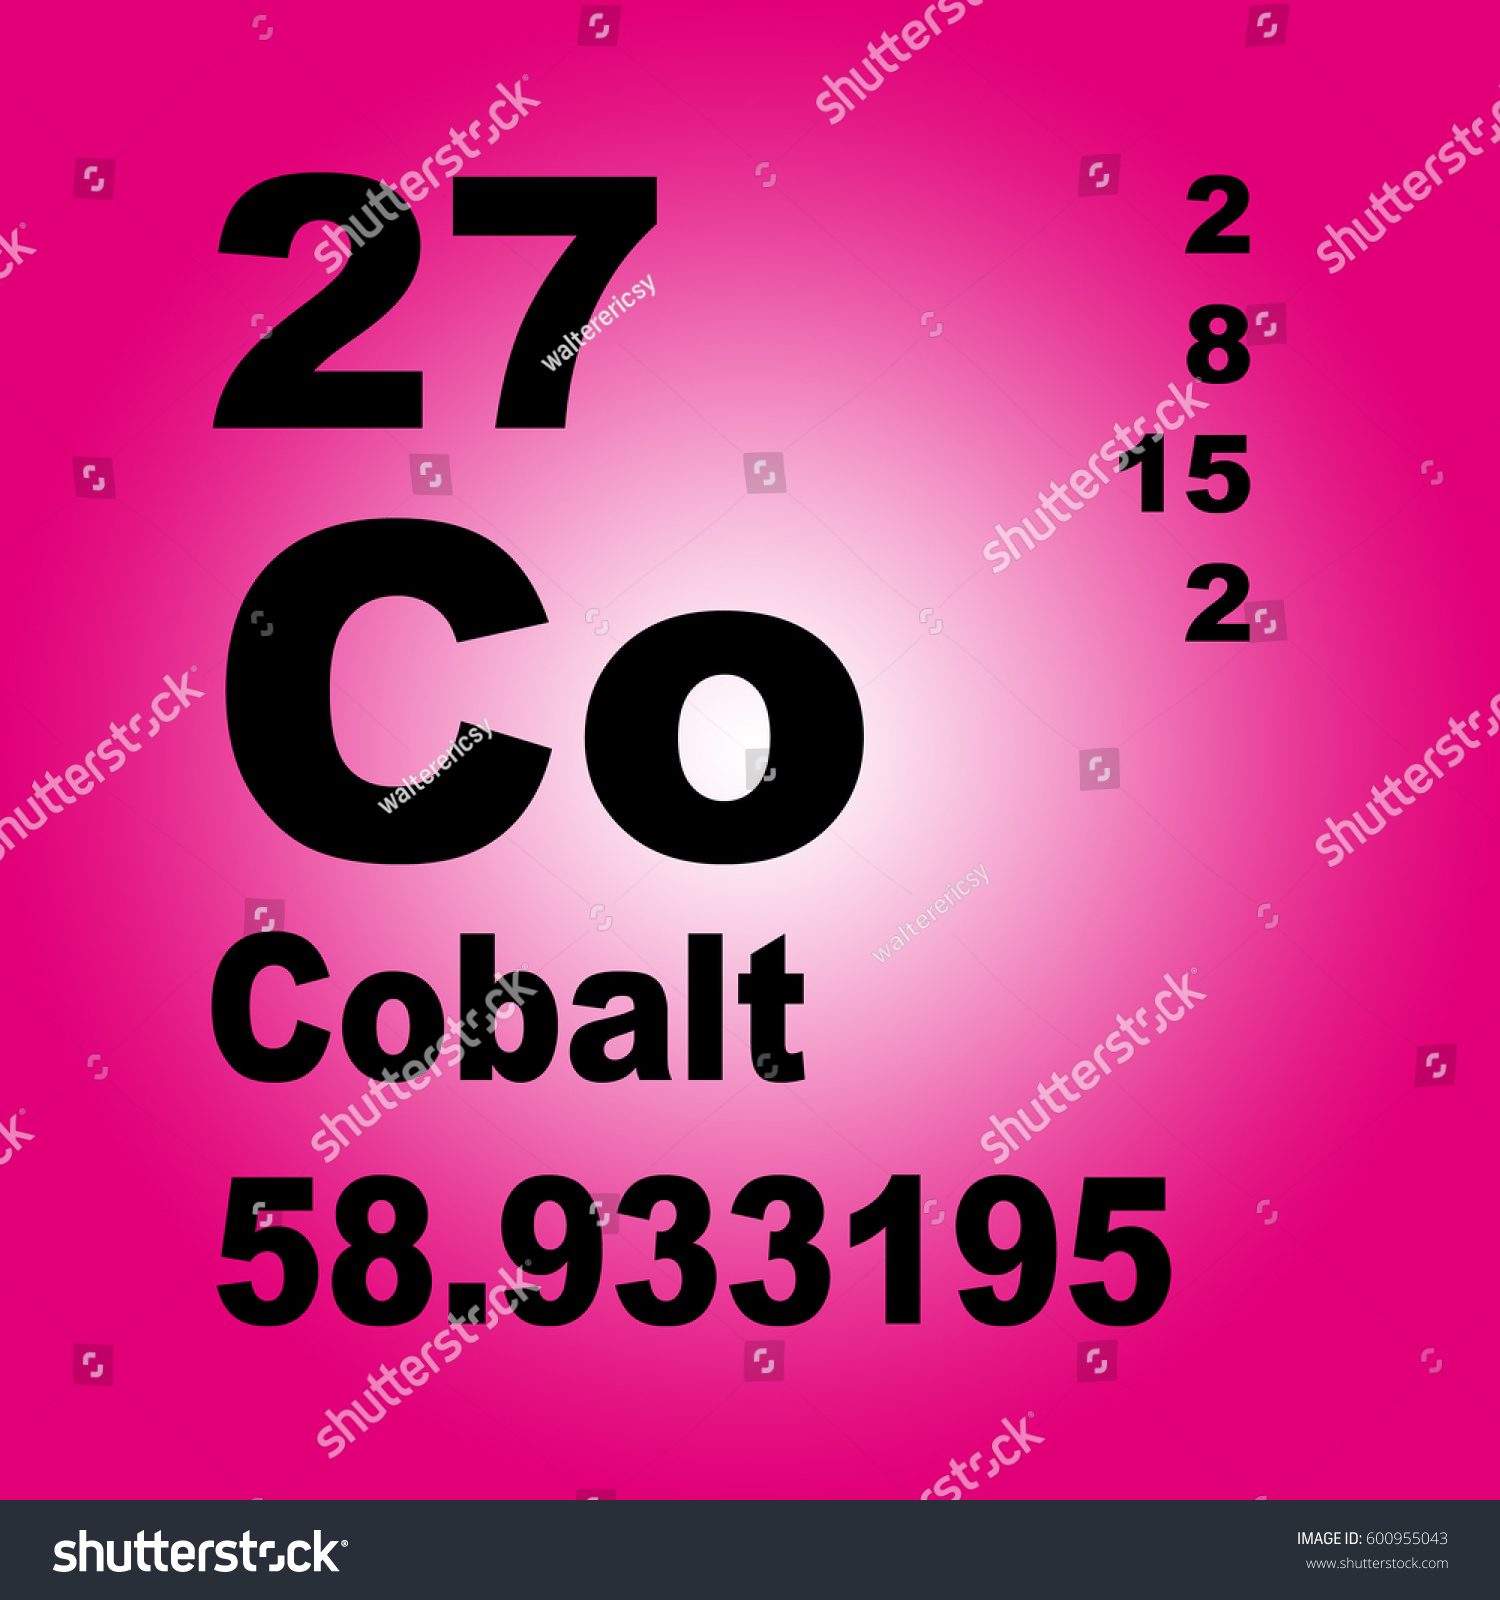 Cobalt periodic table image collections periodic table images cobalt periodic table elements stock illustration 600955043 cobalt periodic table of elements gamestrikefo image collections gamestrikefo Image collections